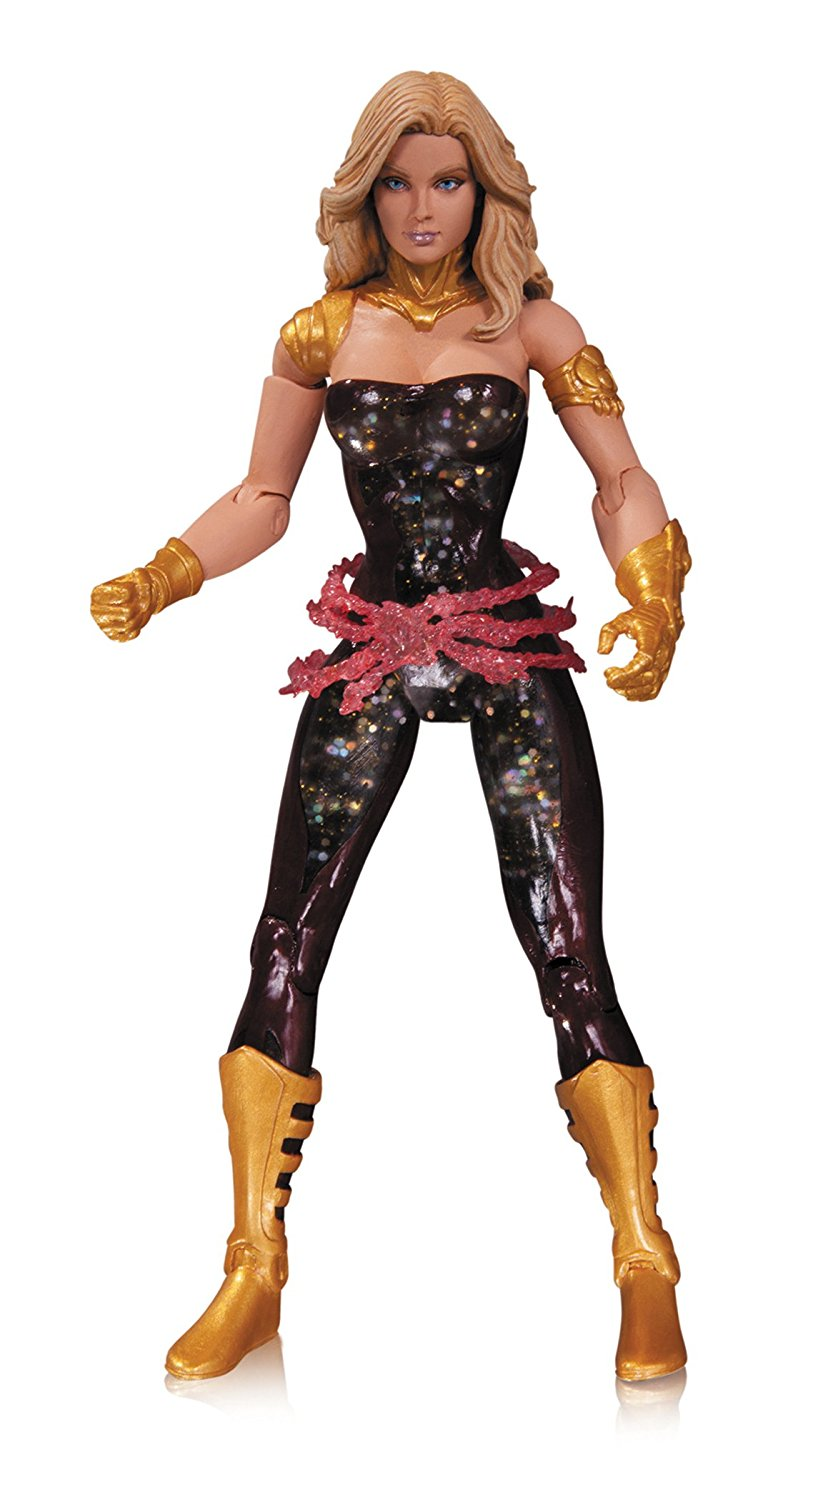 DC Comics The New 52: Teen Titans: Wonder Girl Action Figure, 100% Toy By DC Collectibles From USA by